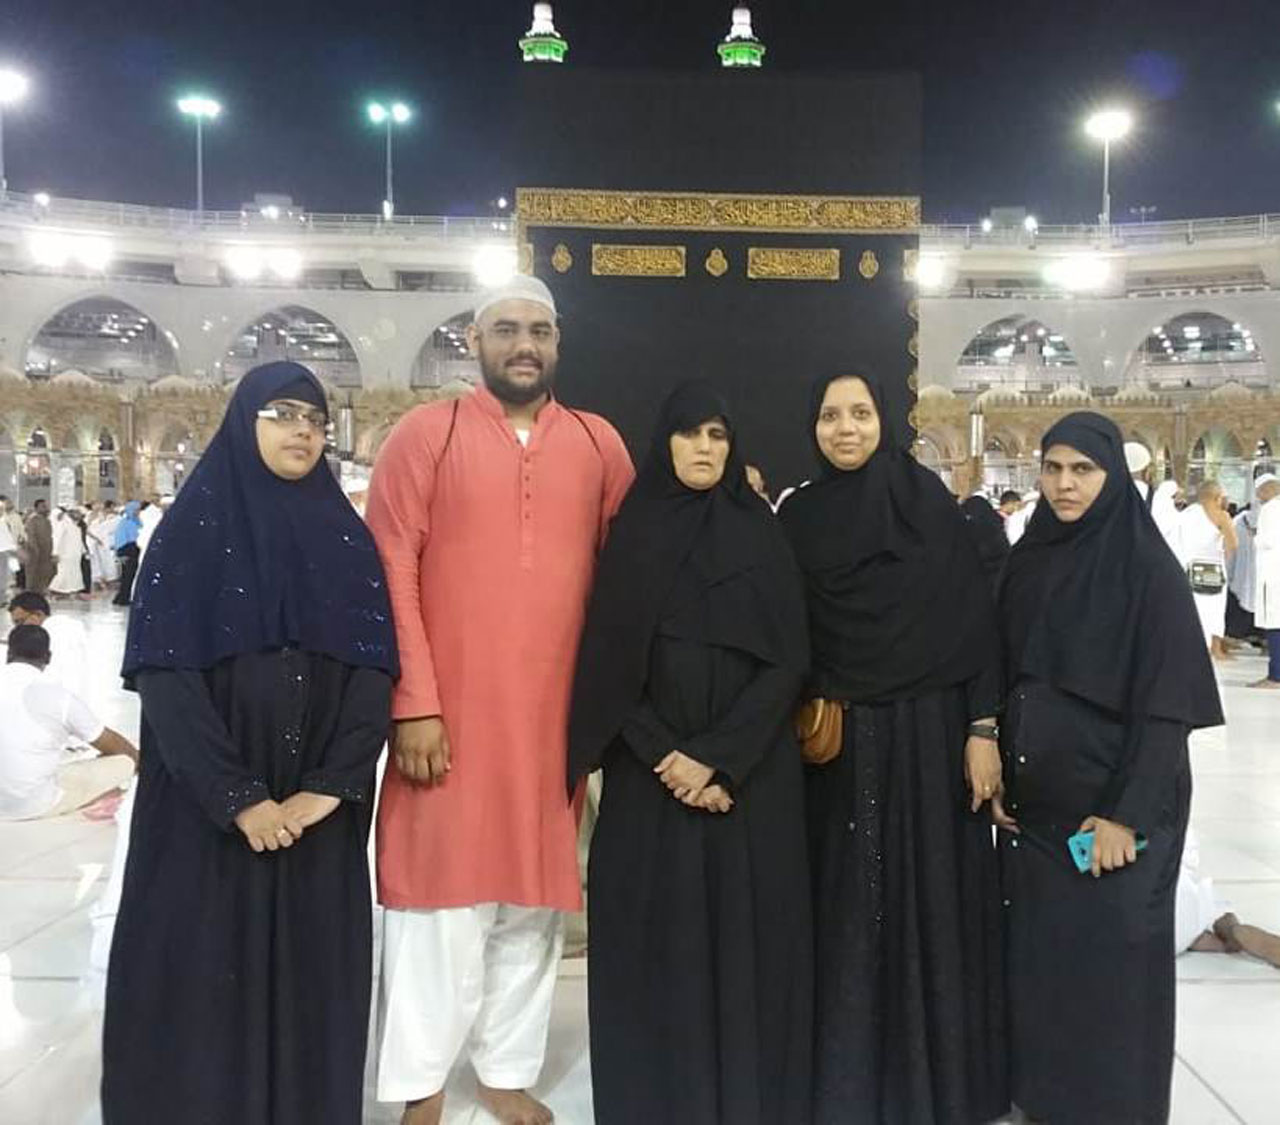 Bushra, Engr. Taha, Rudaba, Erum & Hina after completing their Taw'aaf